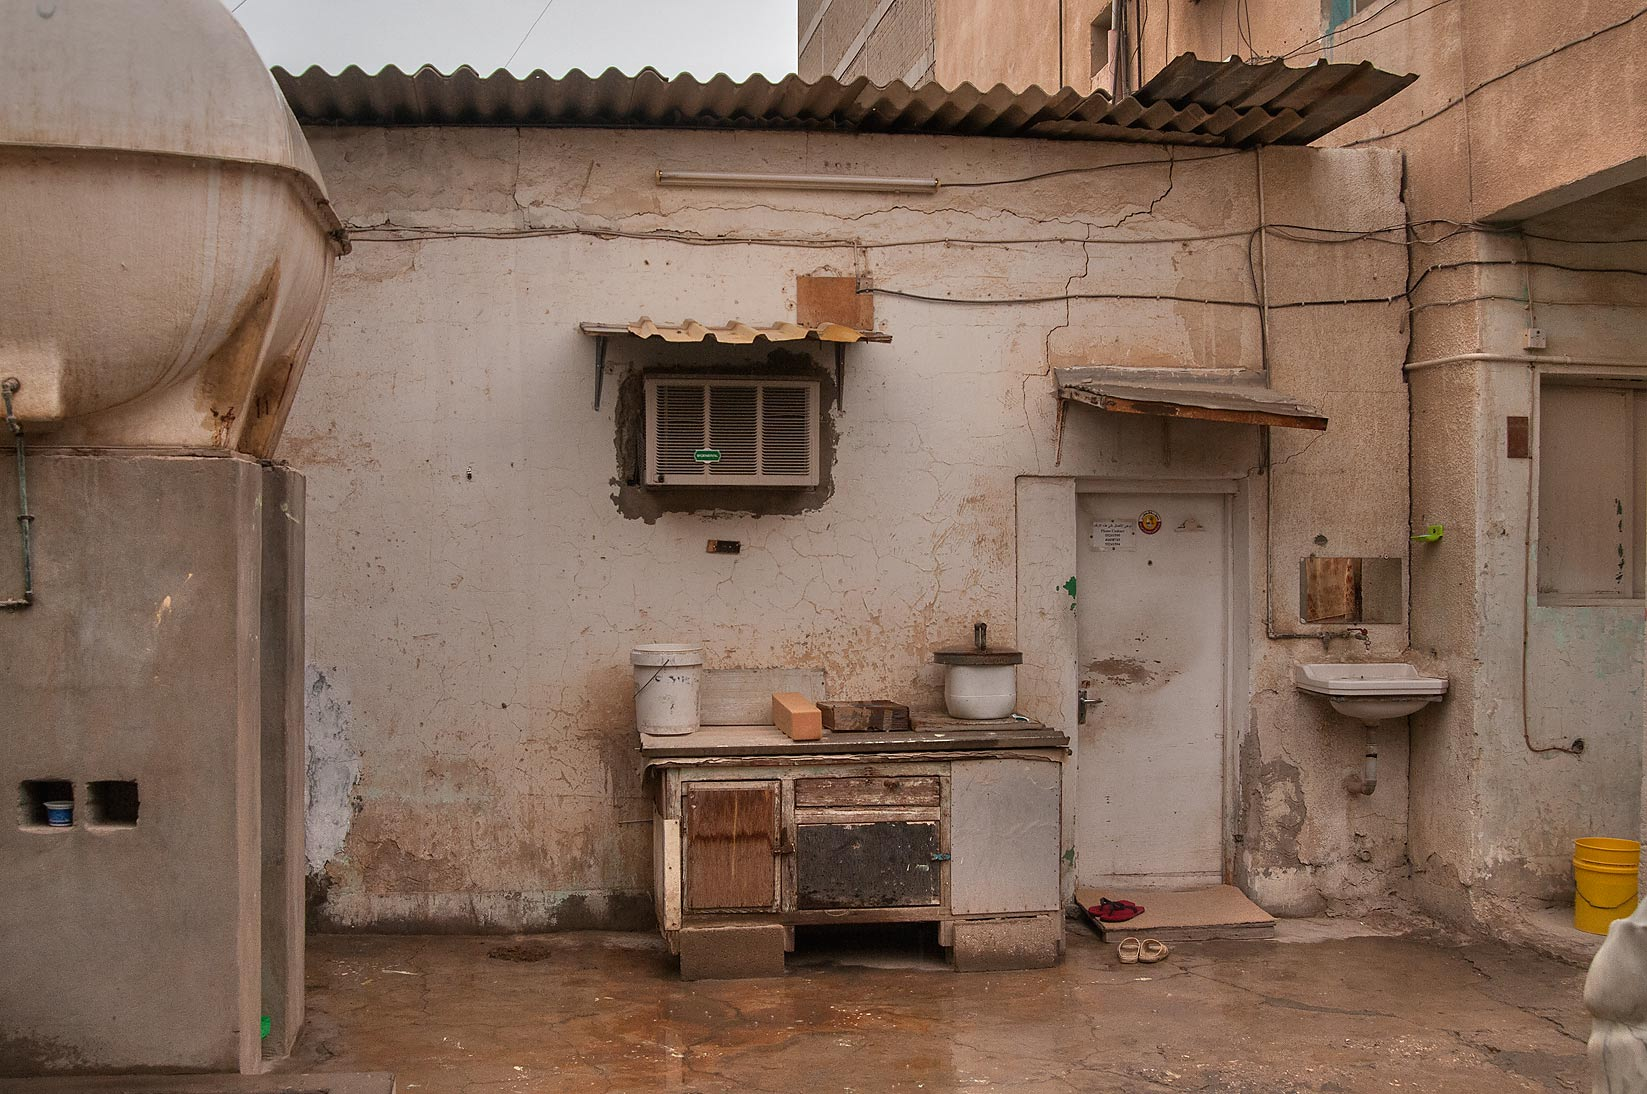 Communal kitchen at Al Jassasiya St., Musheirib area. Doha, Qatar